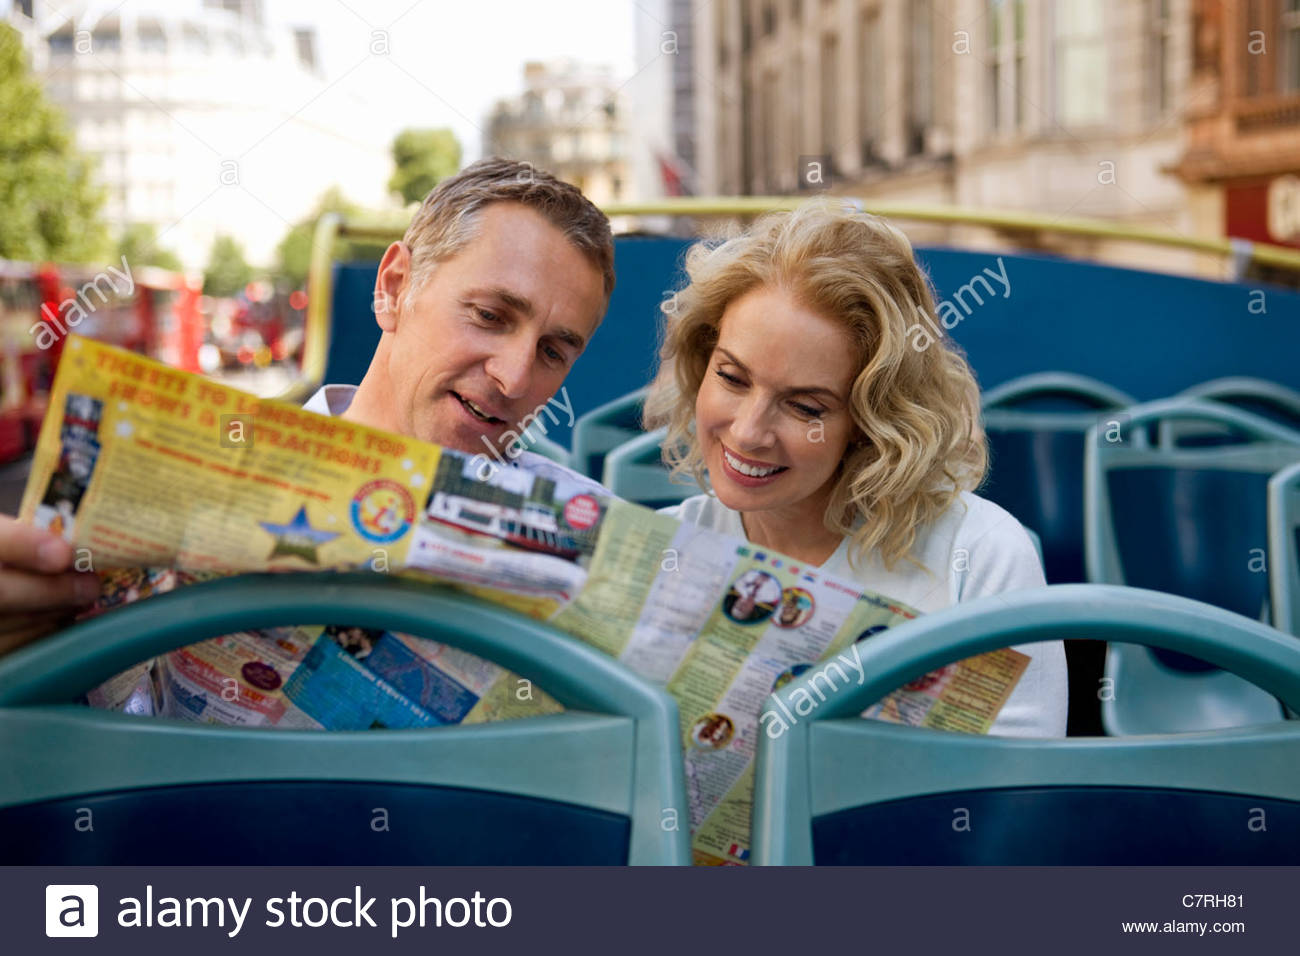 A middle-aged couple sitting on a sightseeing bus, looking at a map - Stock Image